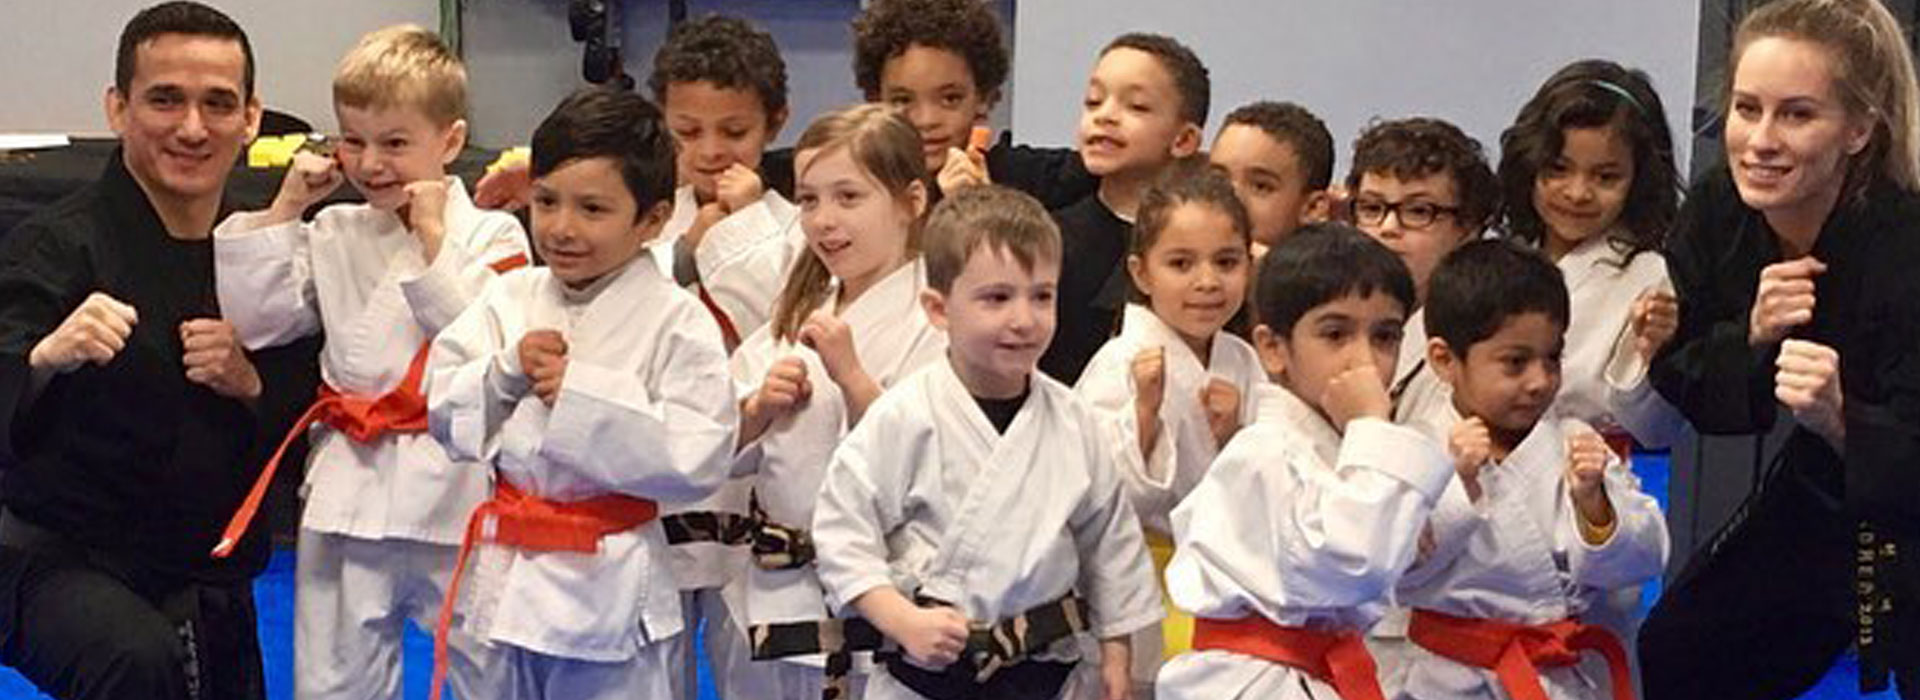 Top 5 Best Martial Arts Gyms to Join near Fairfax, VA close to Old Town Fairfax, Chantilly, Vienna, Fairfax, Great Falls, Providence Elementary School, Daniels Run Elementary School, Laurel Ridge Elementary School, Mosaic Elementary School, and the Mosaic District